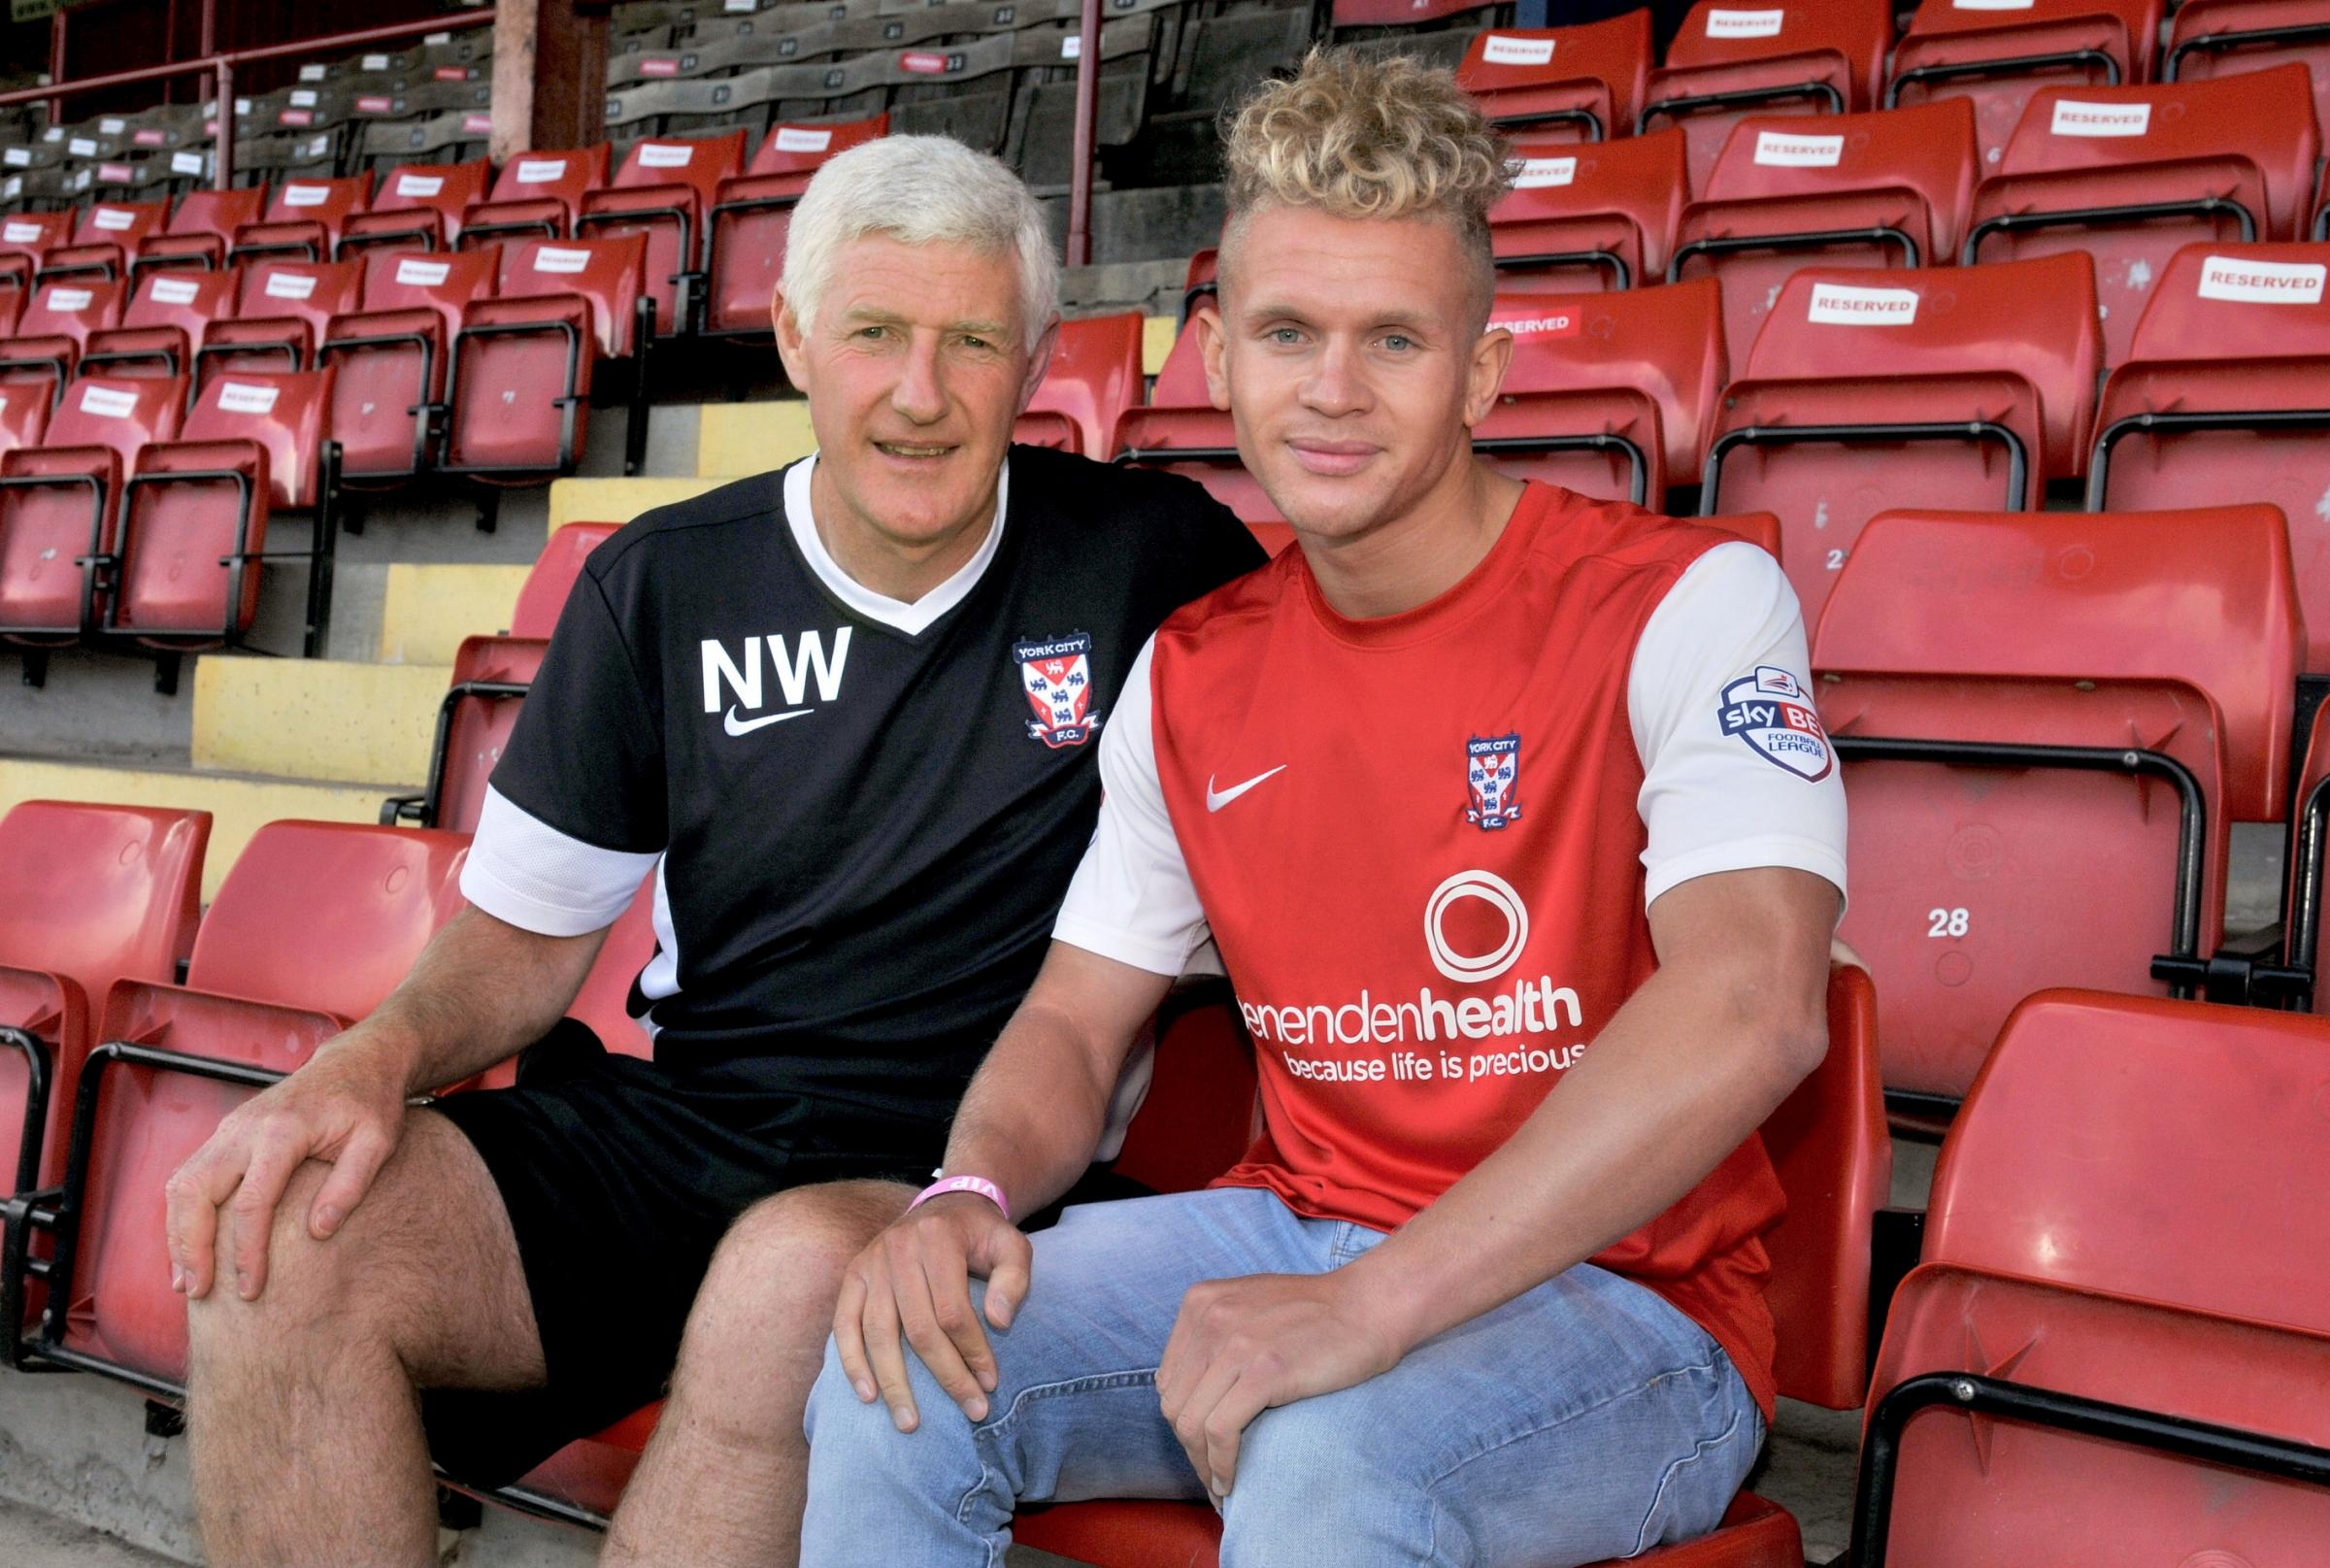 York City boss Nigel Worthington with new signing Lindon Meikle